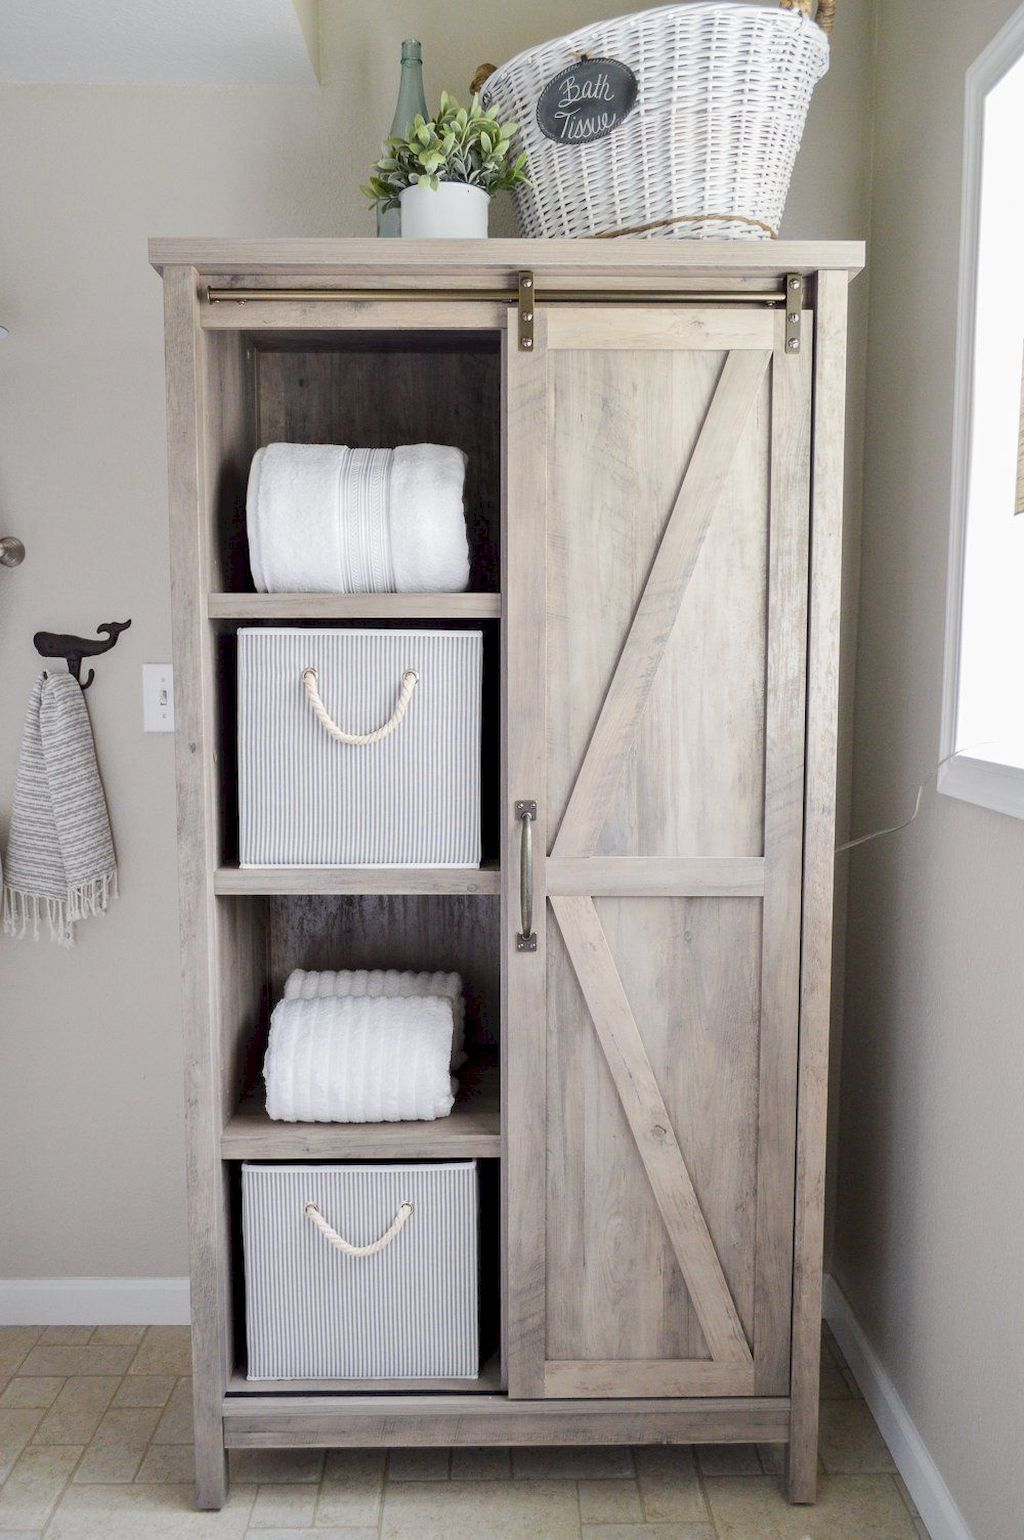 Awesome Free Standing Bathroom Cabinets Ideas Https Carribeanpic Com Free Standing Bathroom Ca Farmhouse Storage Cabinets Diy Bathroom Storage Rustic Storage